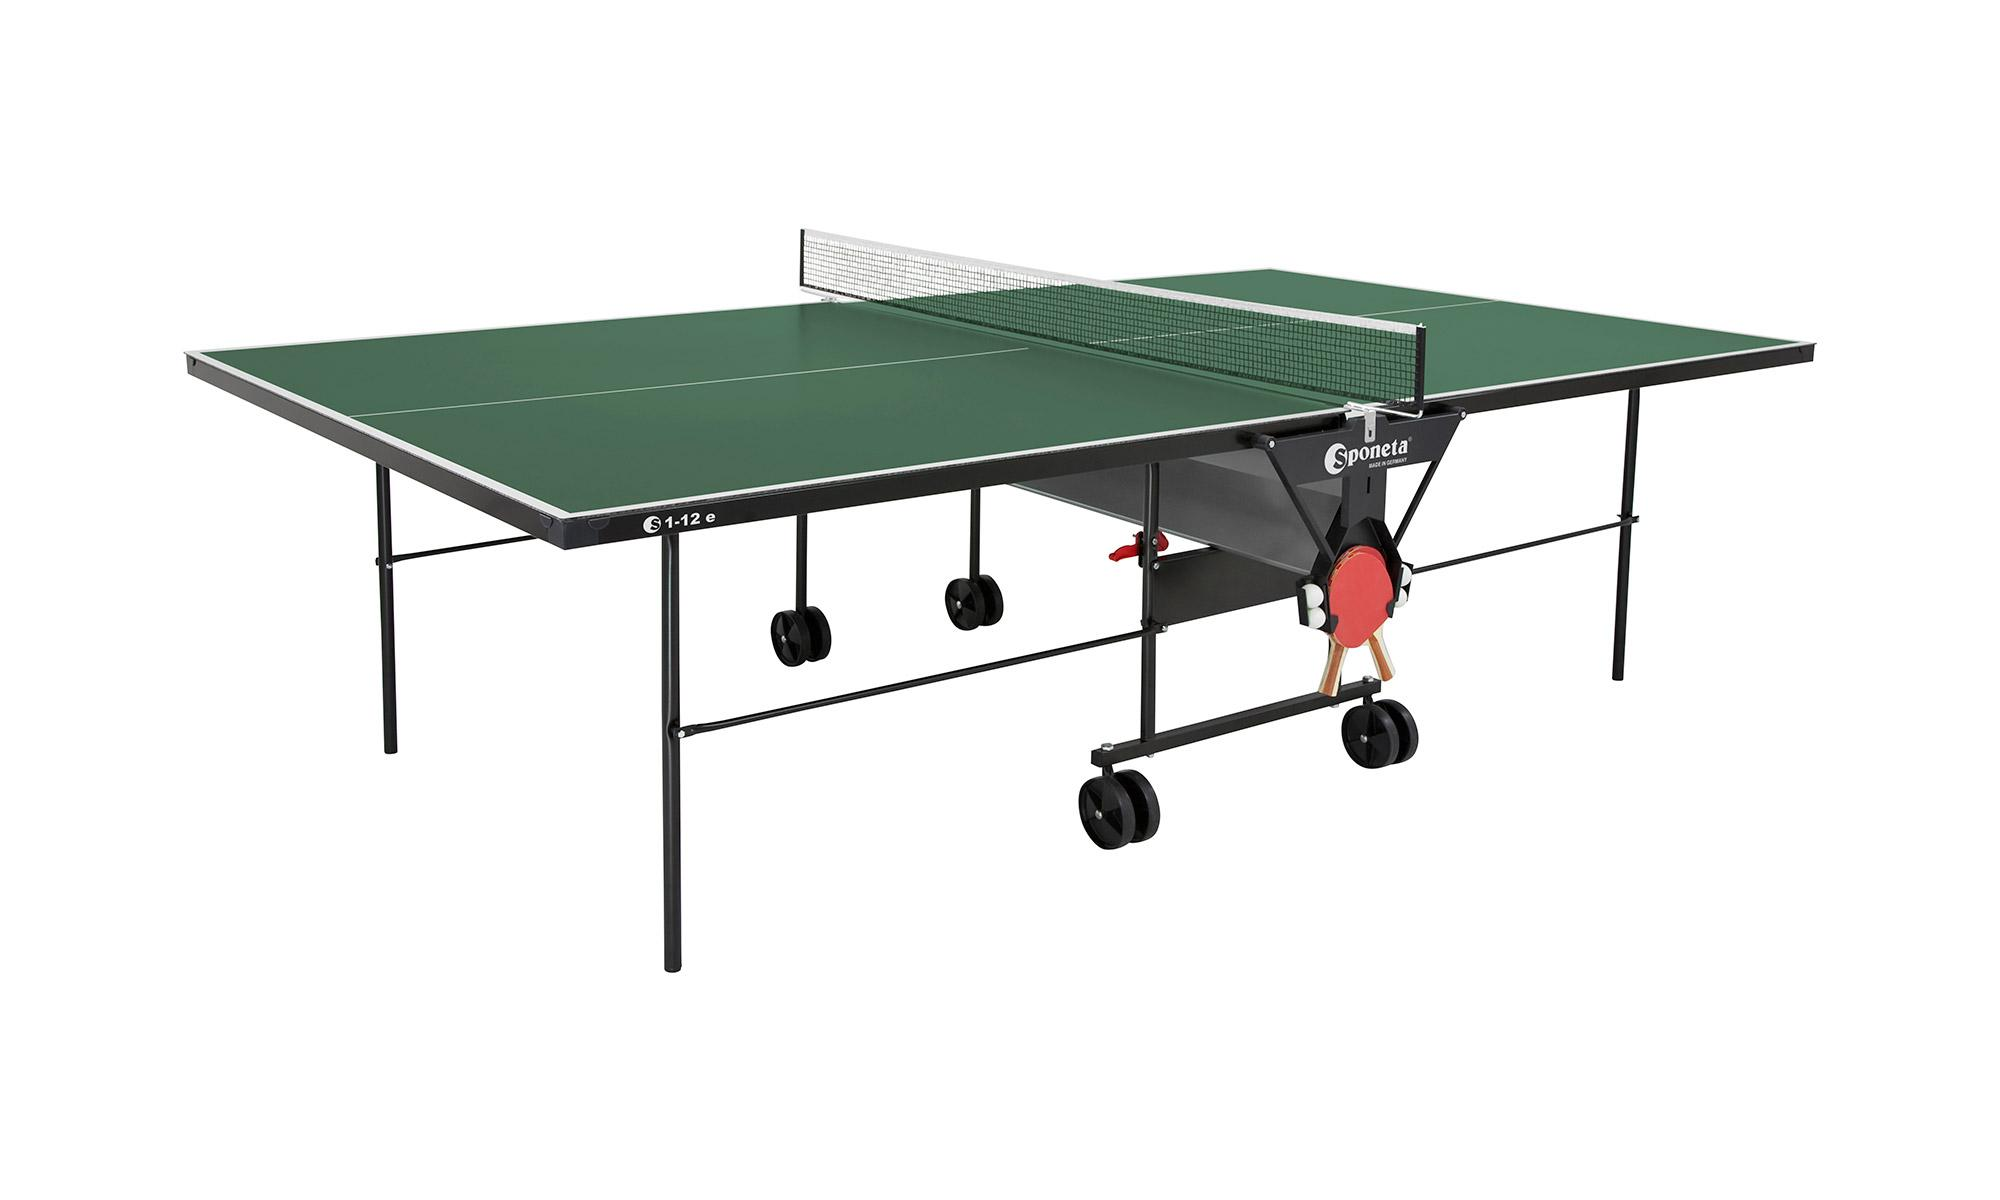 Sponeta Hobbyline Outdoor Blue Table Tennis Table